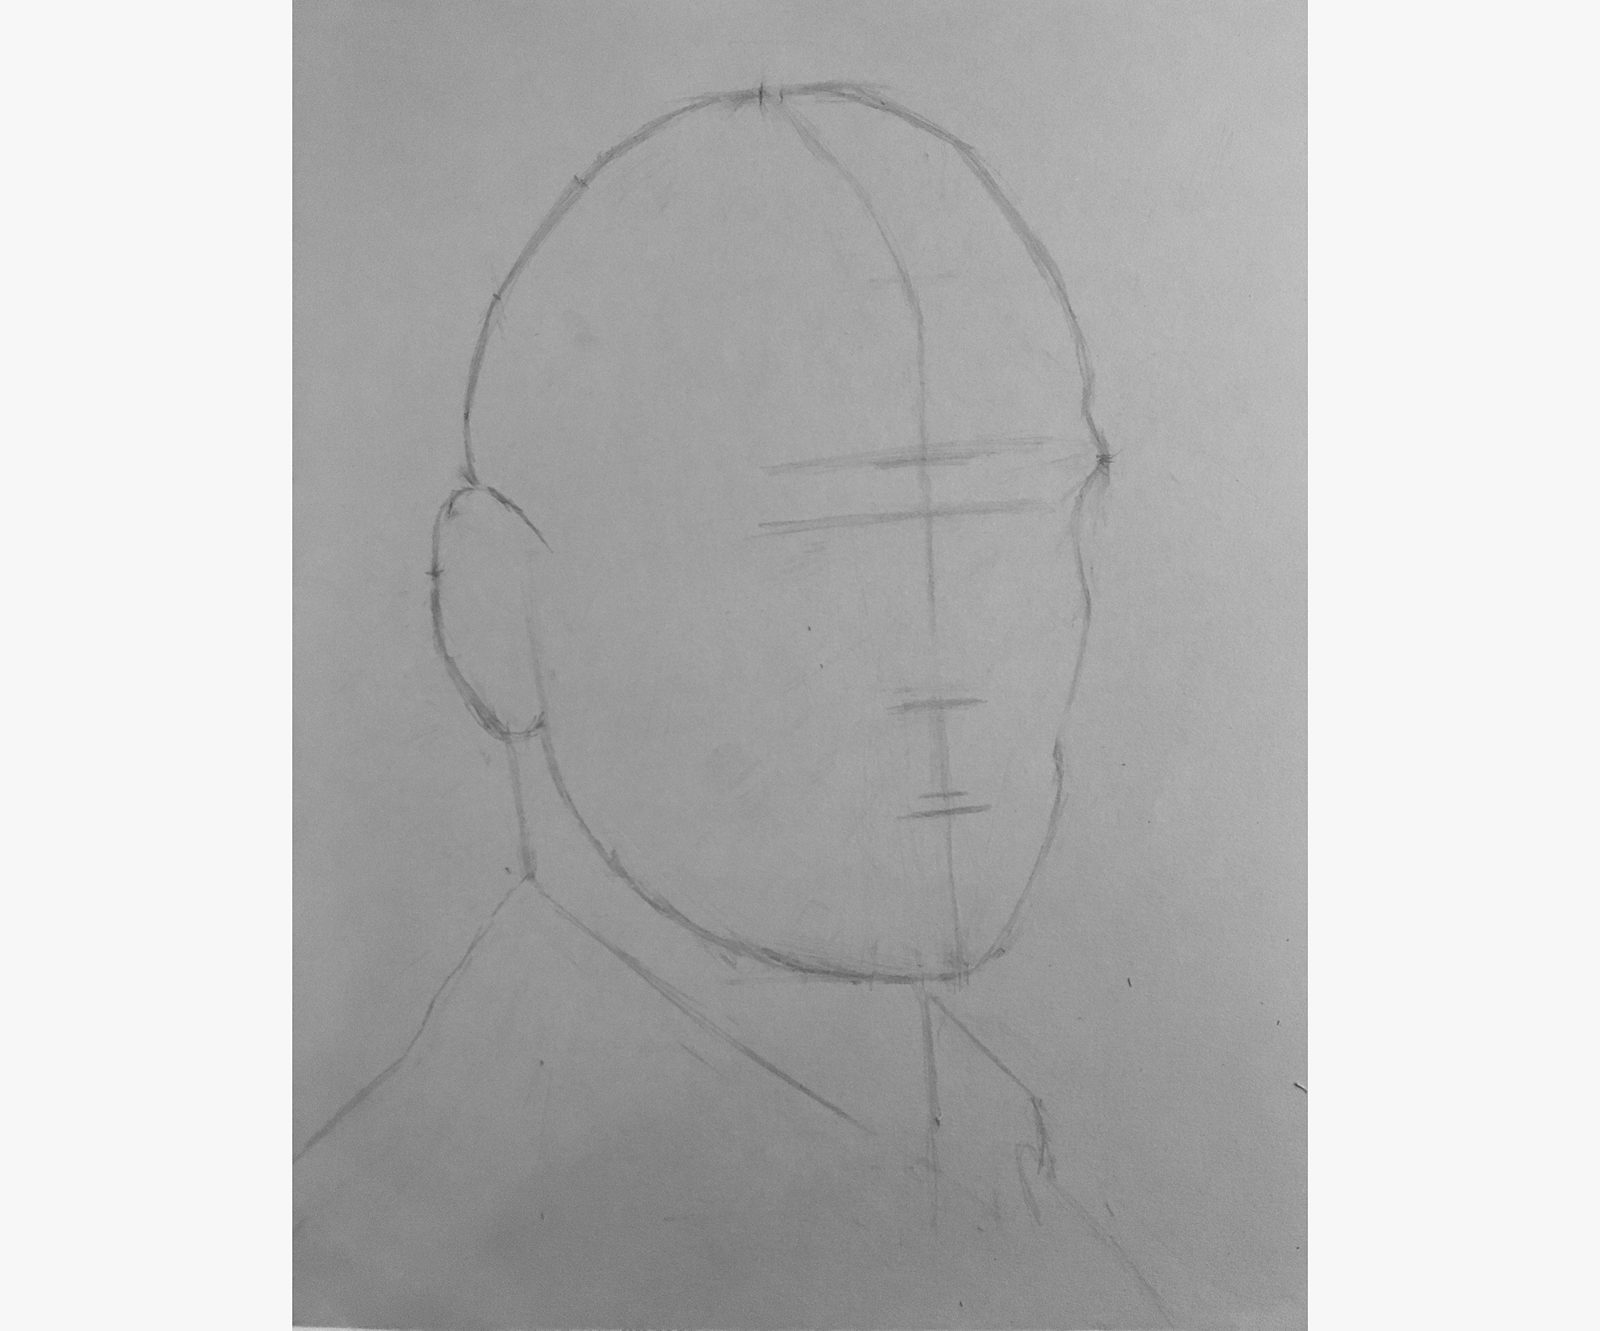 Line Drawings From D Models : How i learned to draw realistic portraits in only days